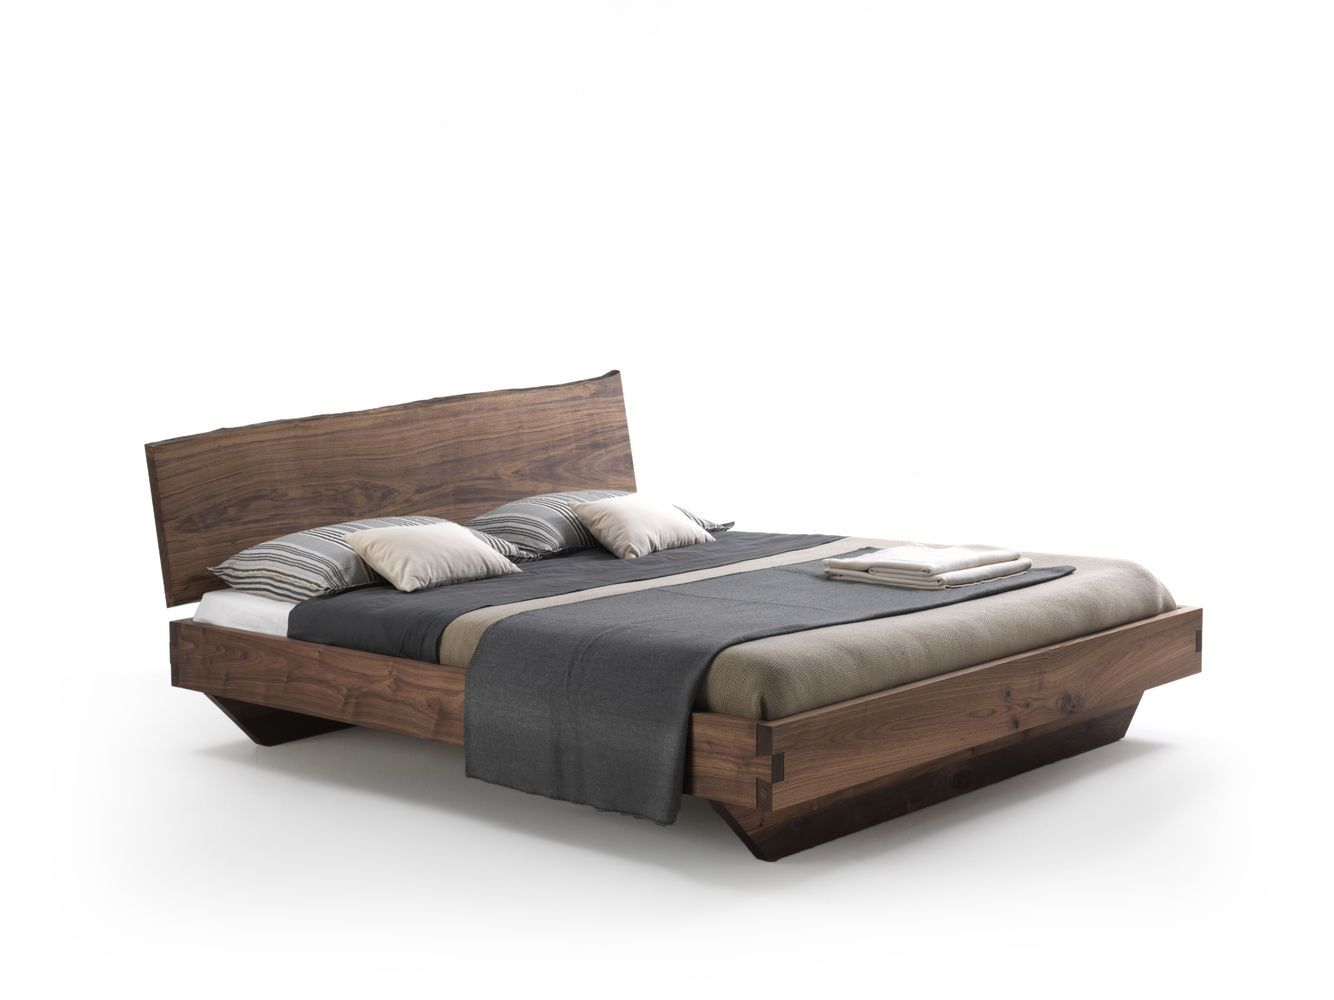 Natural Wood Beds by Ign. Design. - rustic knotty wood   Organic ...